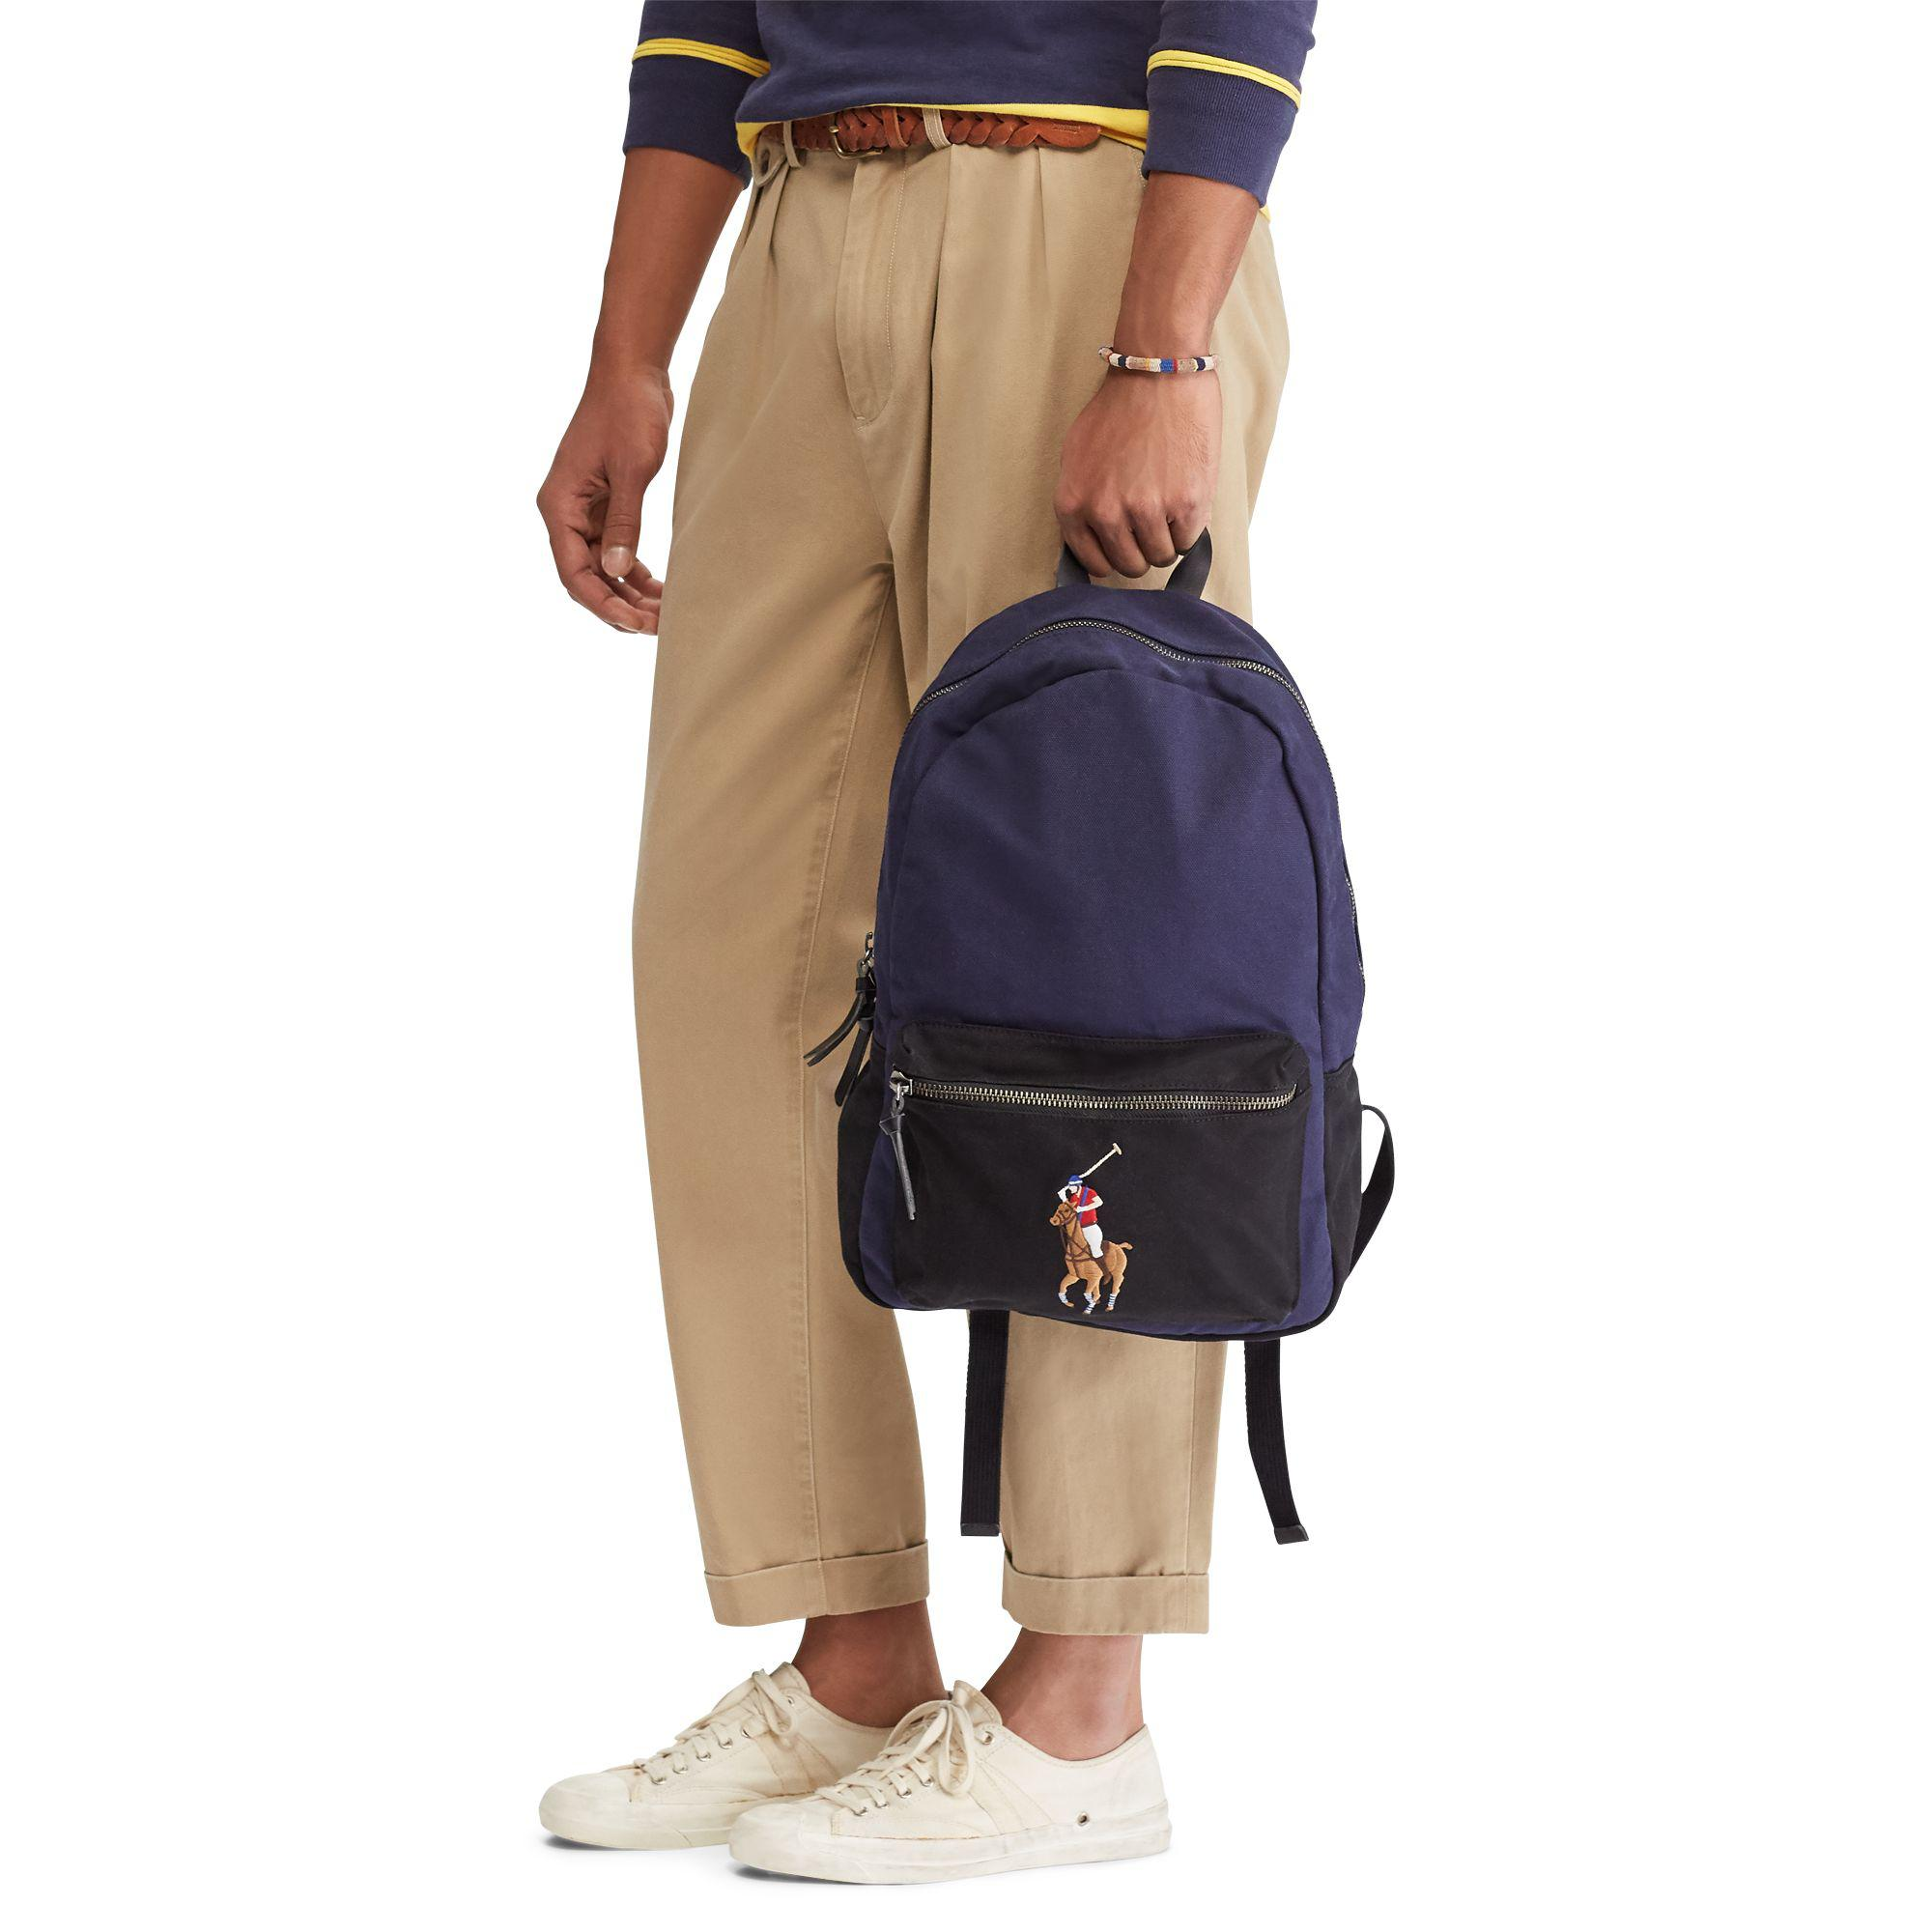 Polo ralph lauren canvas big pony backpack for men lyst jpg 2000x2000 Polo  canvas backpack cb7ac8e4f81ba